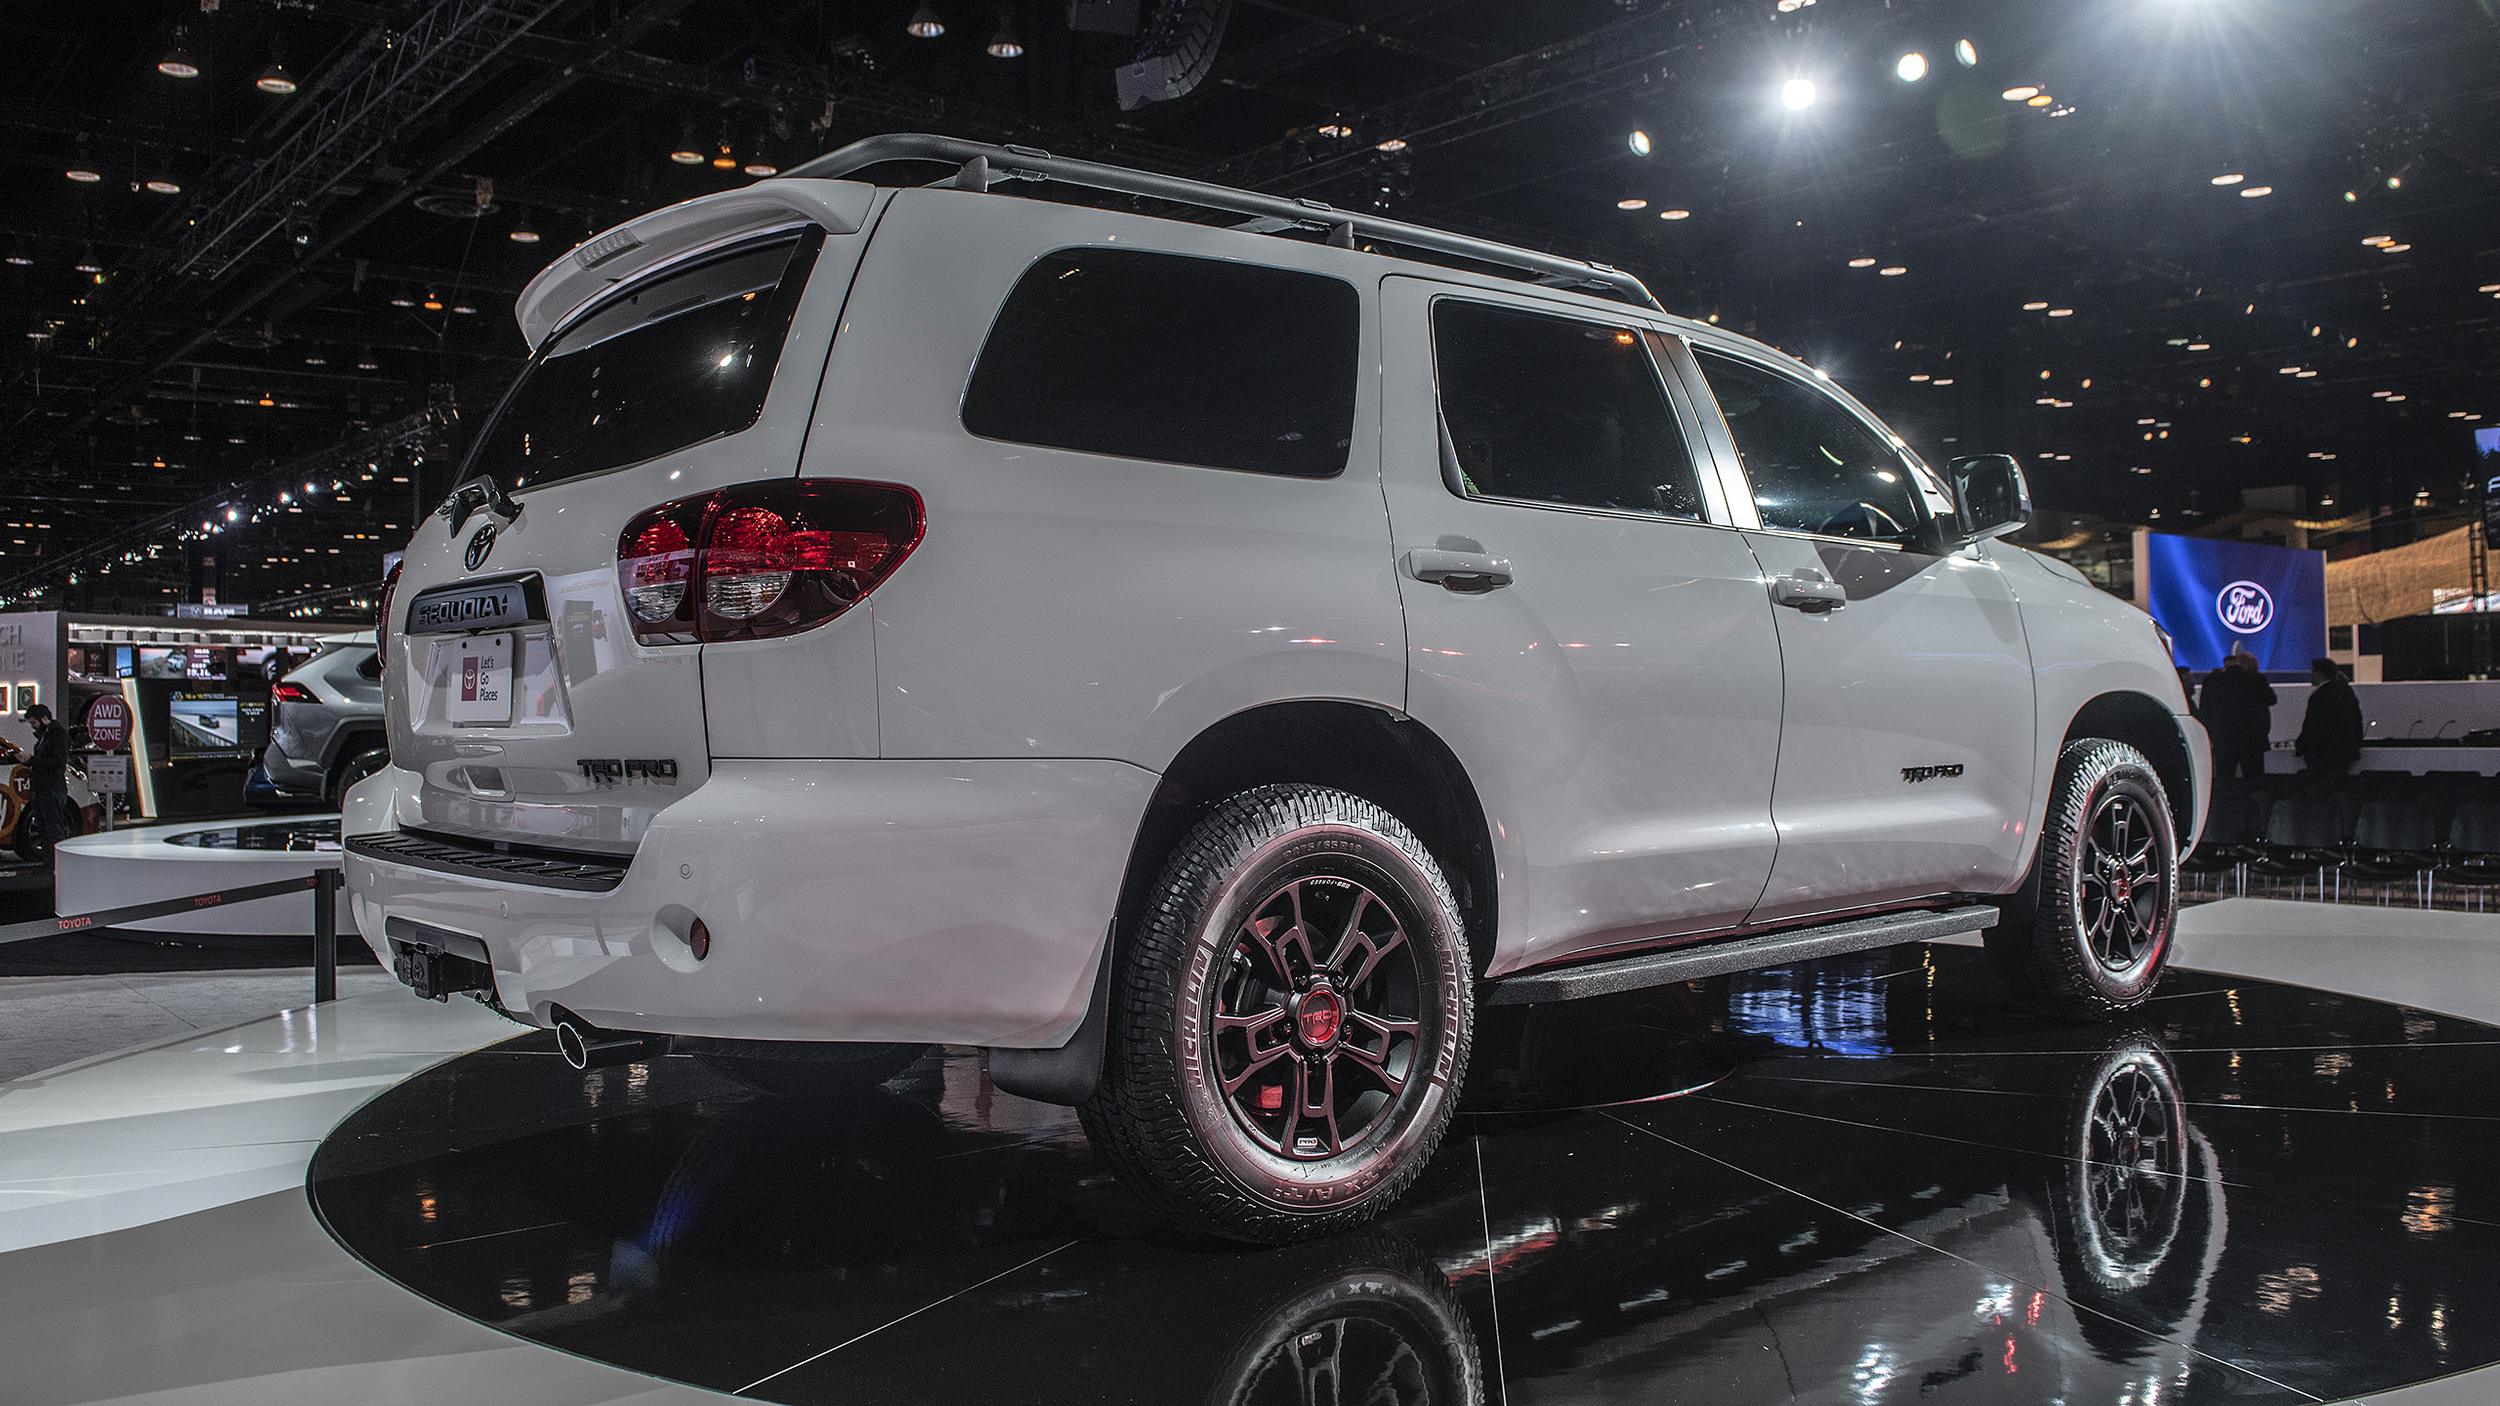 Tundra Trd Pro For Sale >> Toyota TRD Pro family adds Sequoia and Tundra double cab | Autoblog